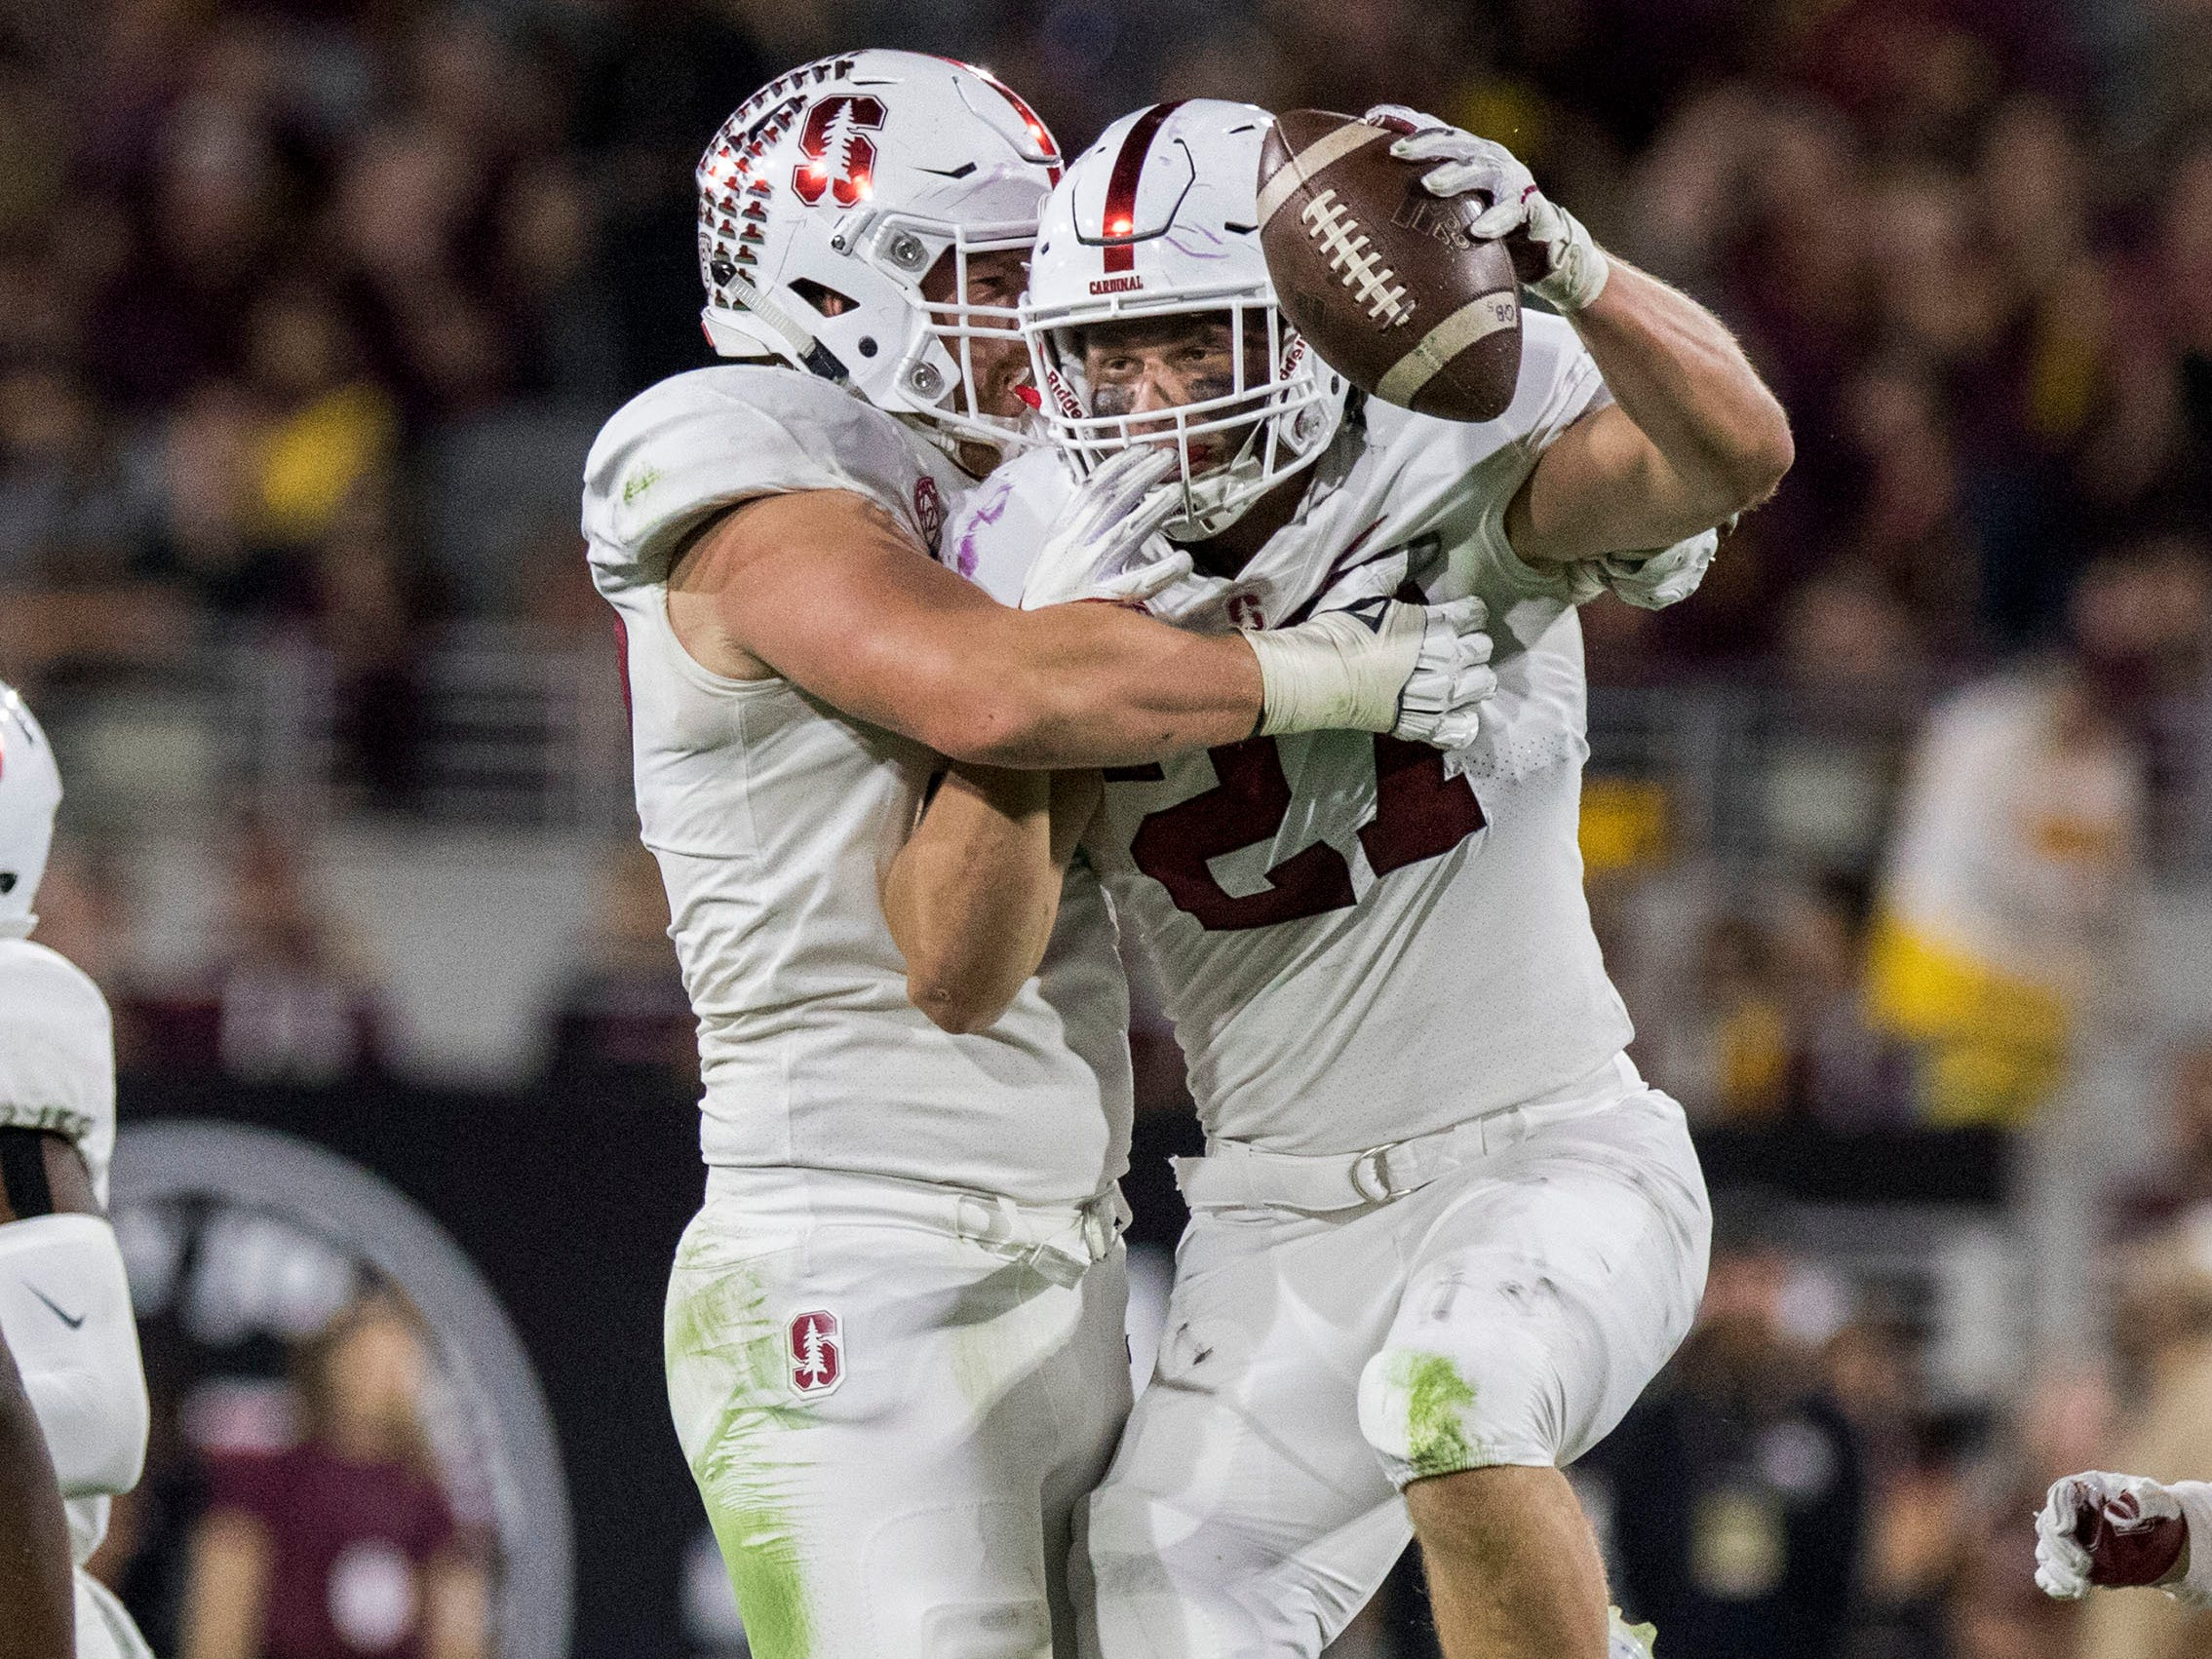 Stanford's Sean Barton (27) celebrates his interception against Arizona State with teammate Dylan Jackson during the first half of an NCAA college football game Thursday, Oct. 18, 2018, in Tempe, Ariz.